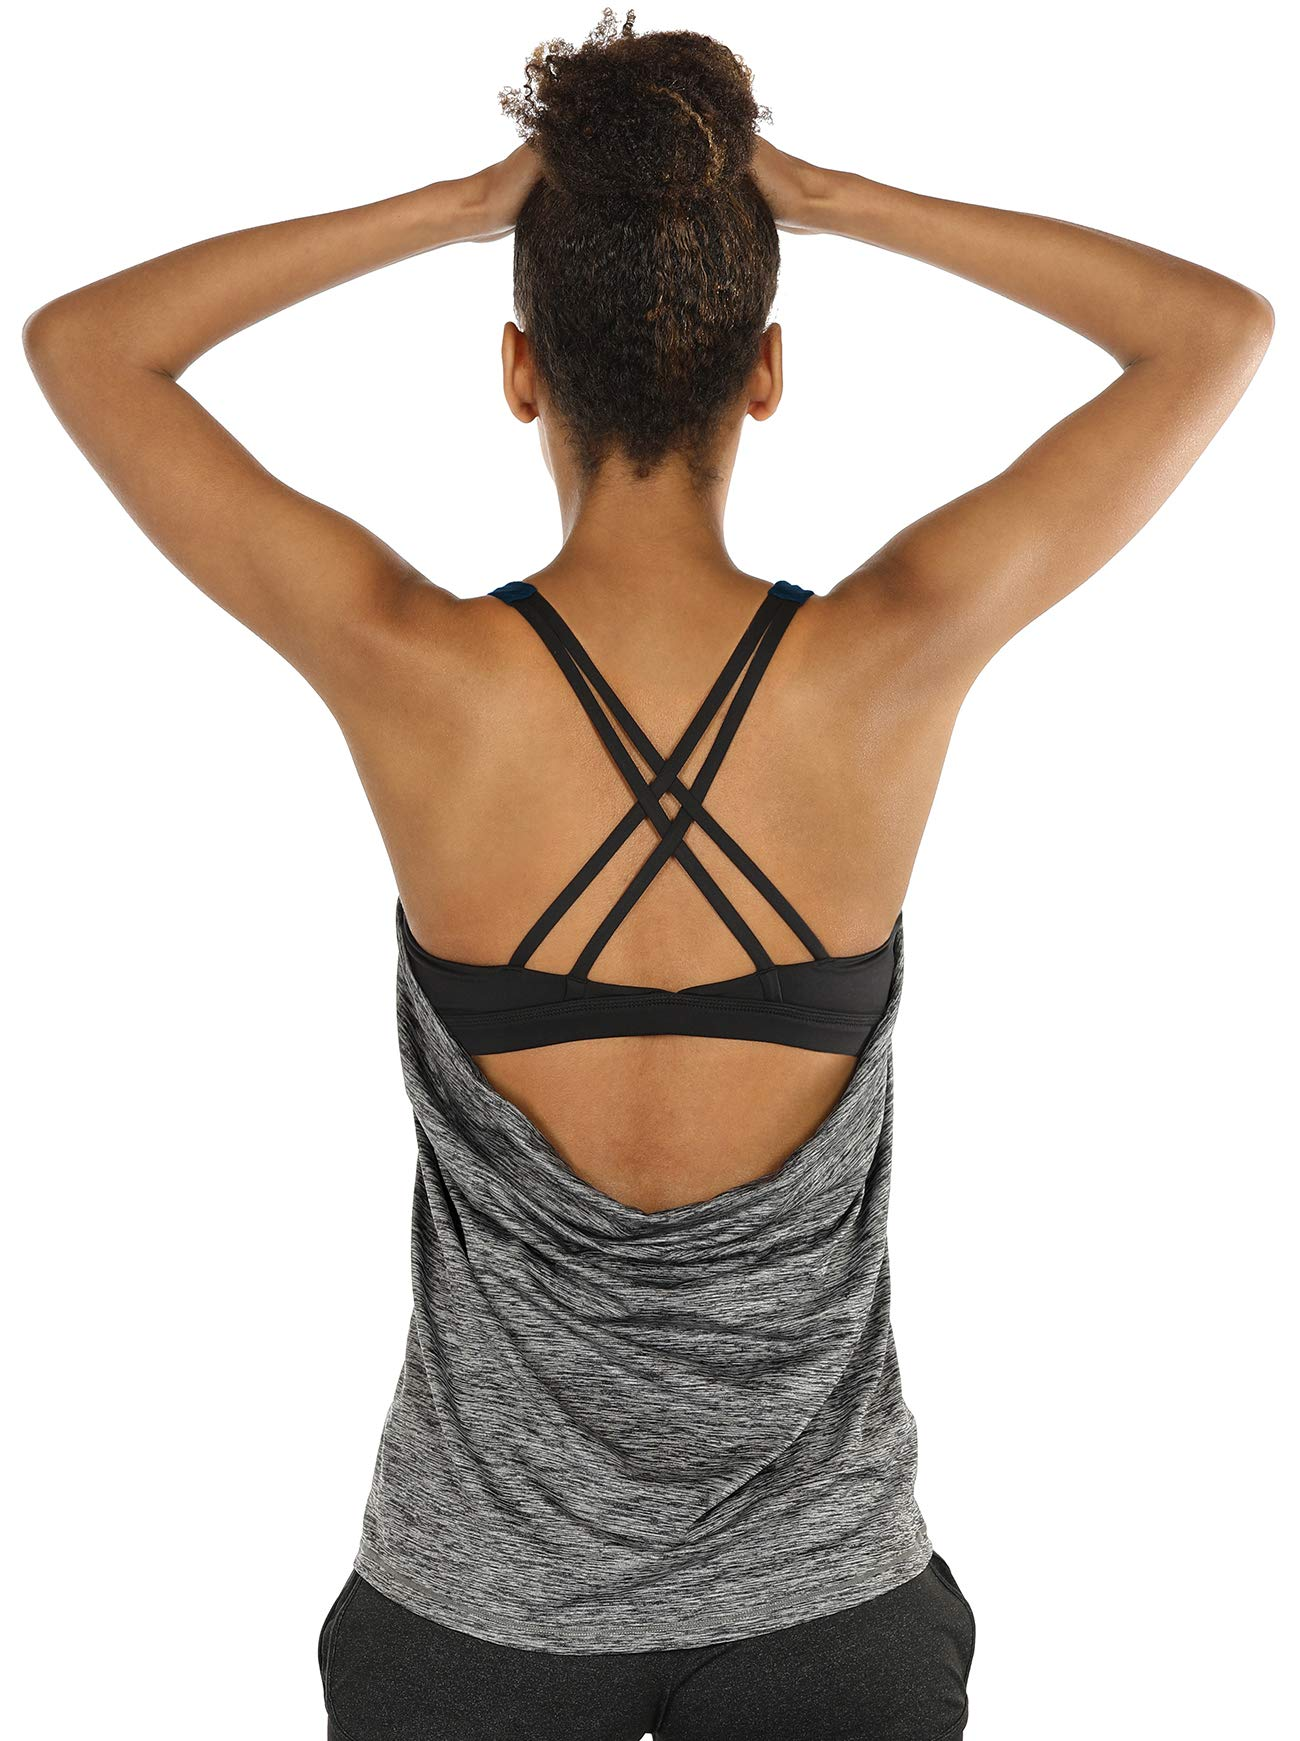 icyzone Yoga Tops Workouts Clothes Activewear Built in Bra Tank Tops for Women (S, Charcoal)